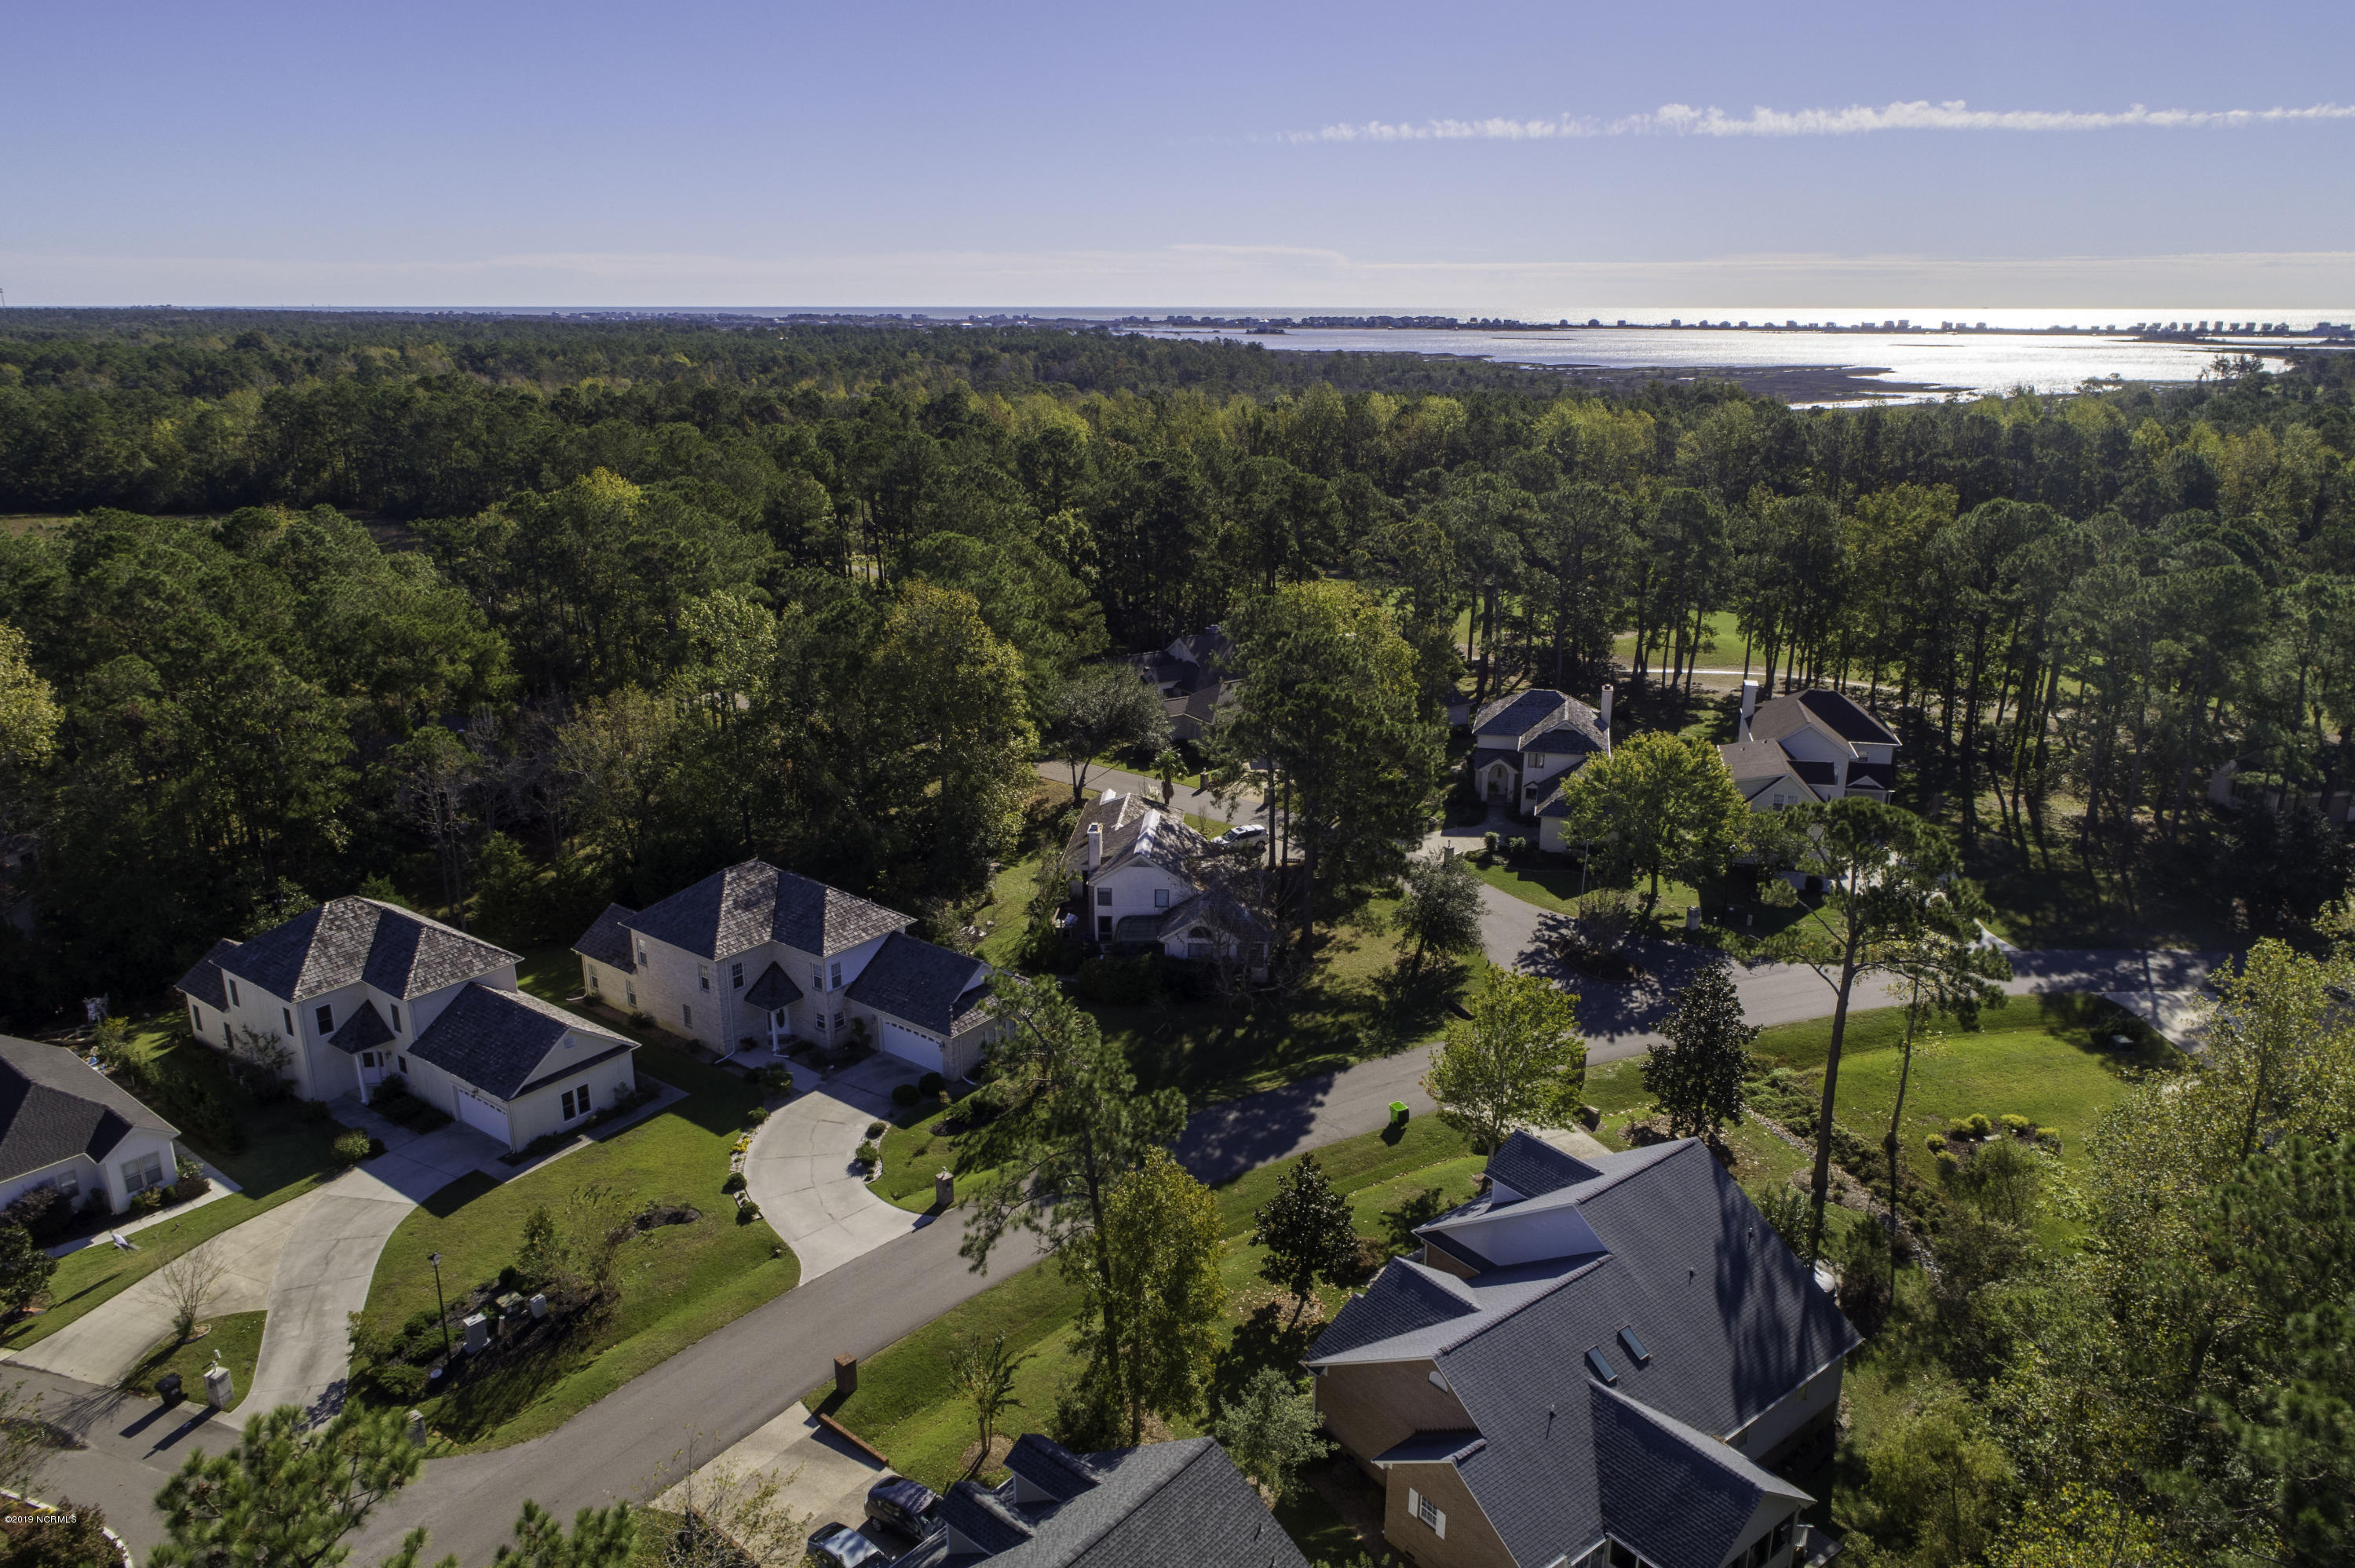 103 Rollingwood Circle, Sneads Ferry, North Carolina 28460, ,Undeveloped,For sale,Rollingwood,100190957